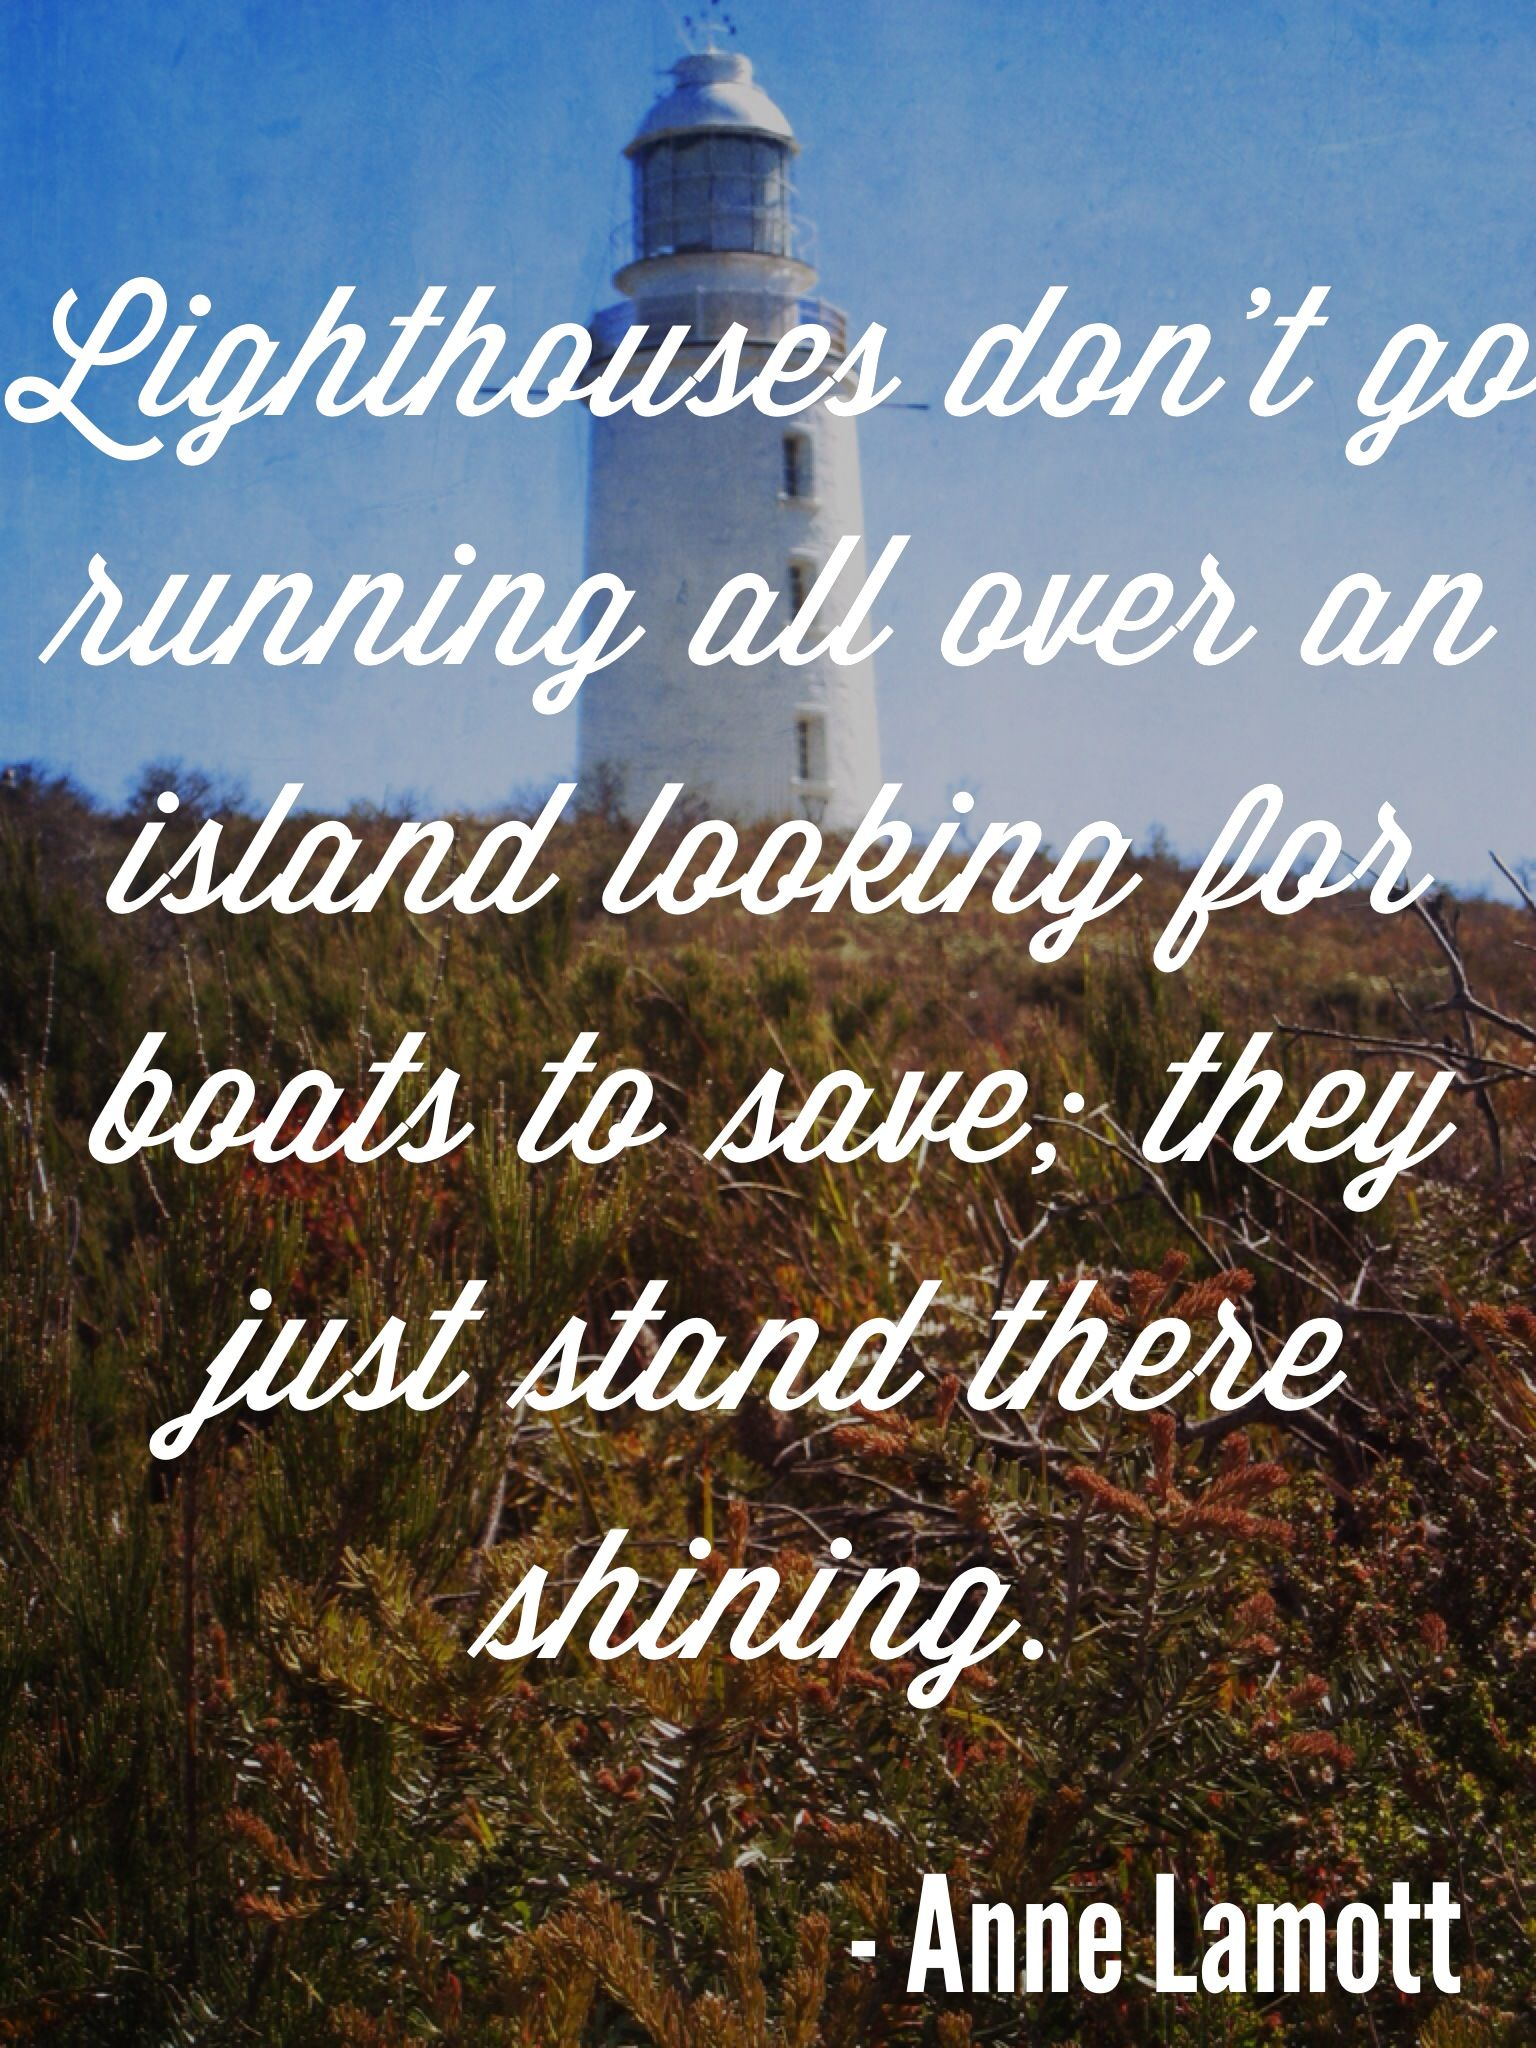 Lighthouses don t go running all over an island looking for boats